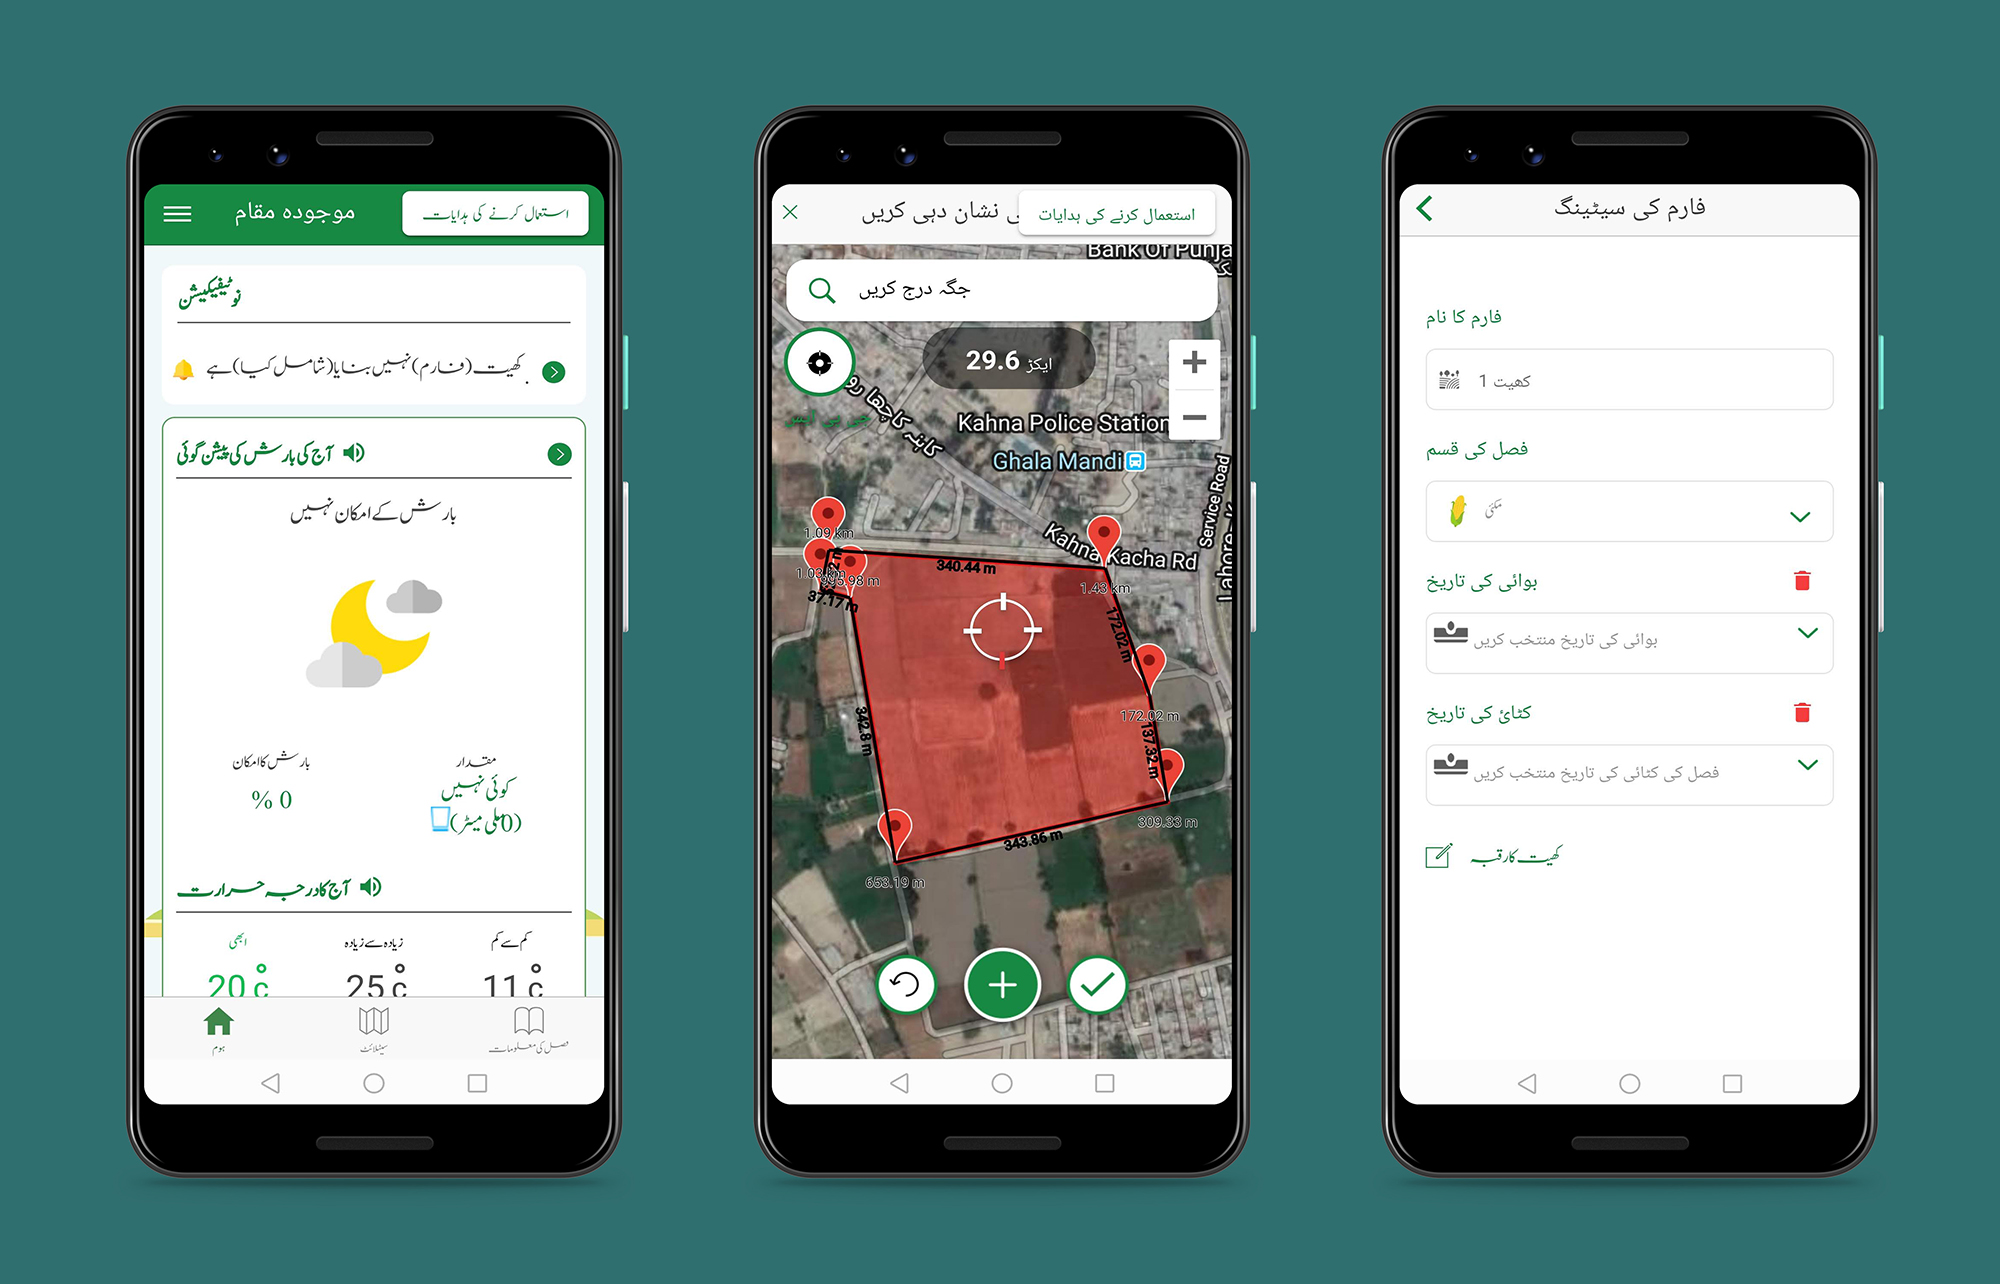 Some of the key screens of Ricult's farmer application when I joined the team